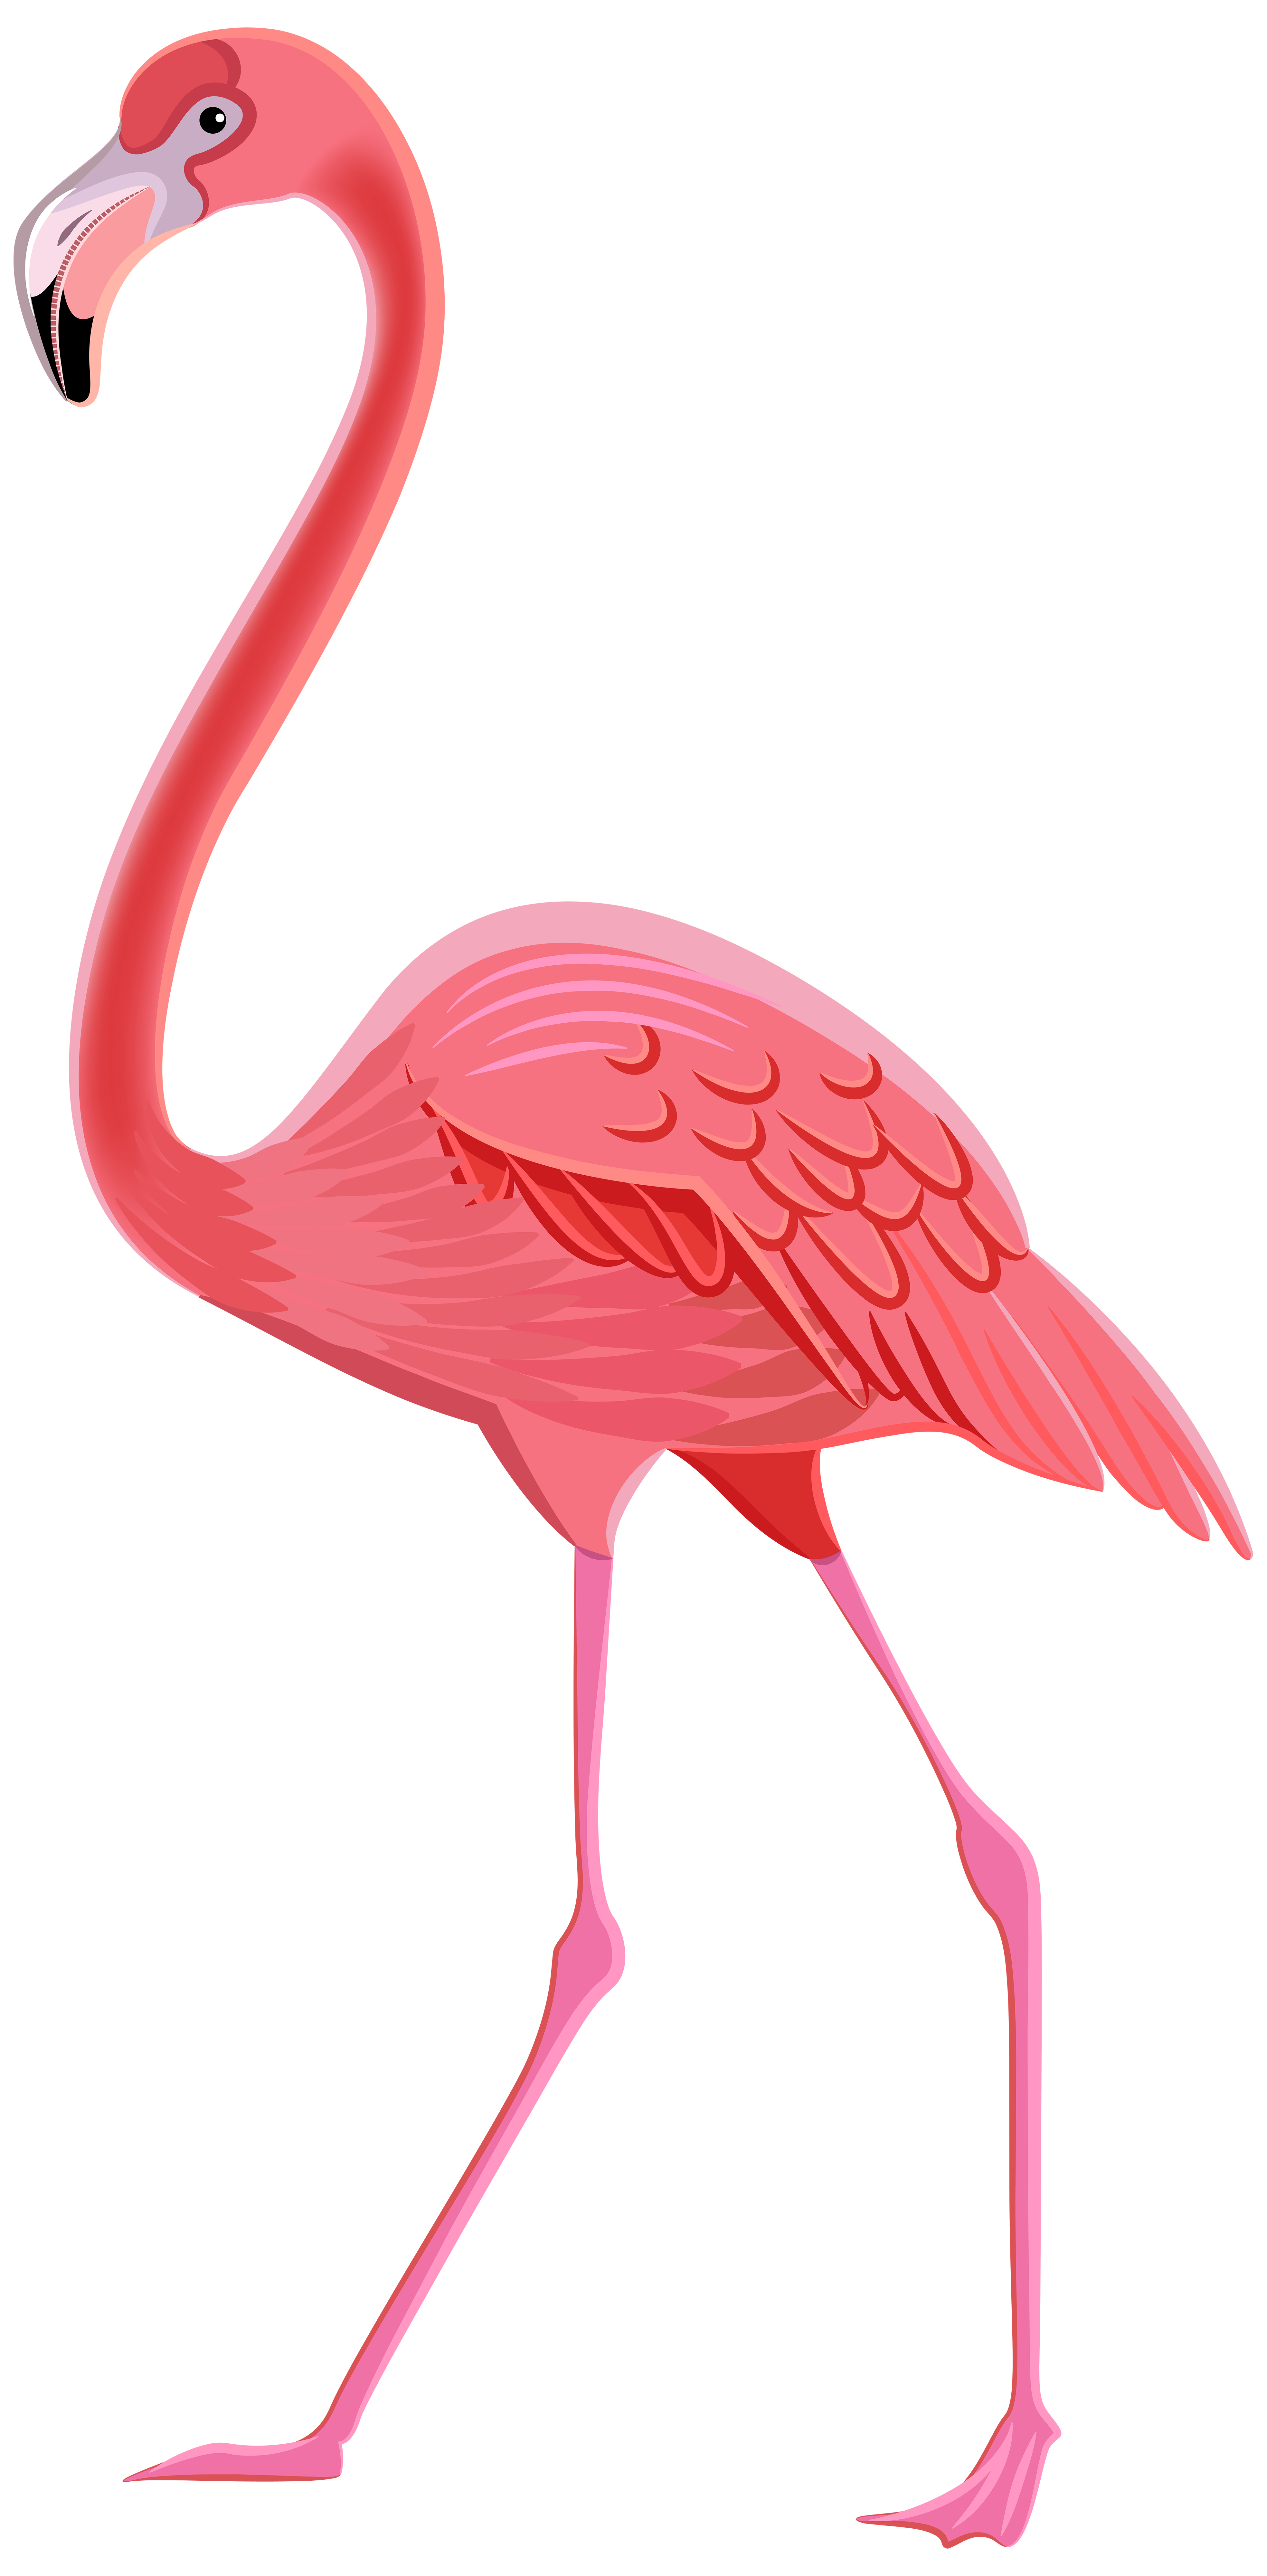 Flamingo Transparent PNG Pictures - Free Icons and PNG ...